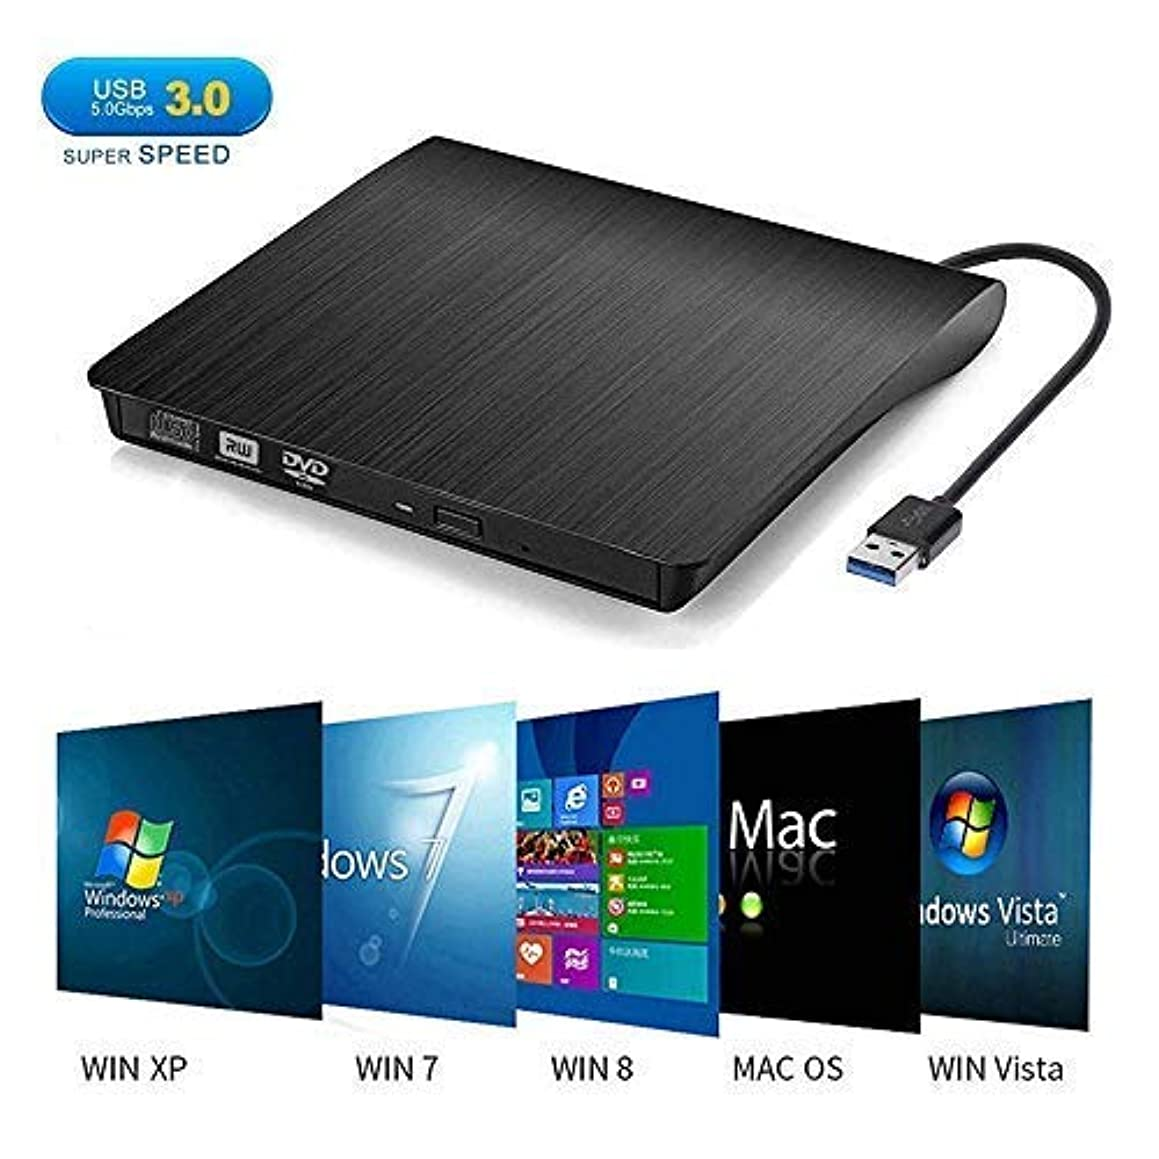 External CD DVD Drive, Dainty USB 3.0 Portable CD DVD +/-RW Drive Slim DVD/CD ROM Rewriter Burner Writer, High Speed Data Transfer for Laptop/Desktops Windows xp /7/8.1/10 and Linux OS